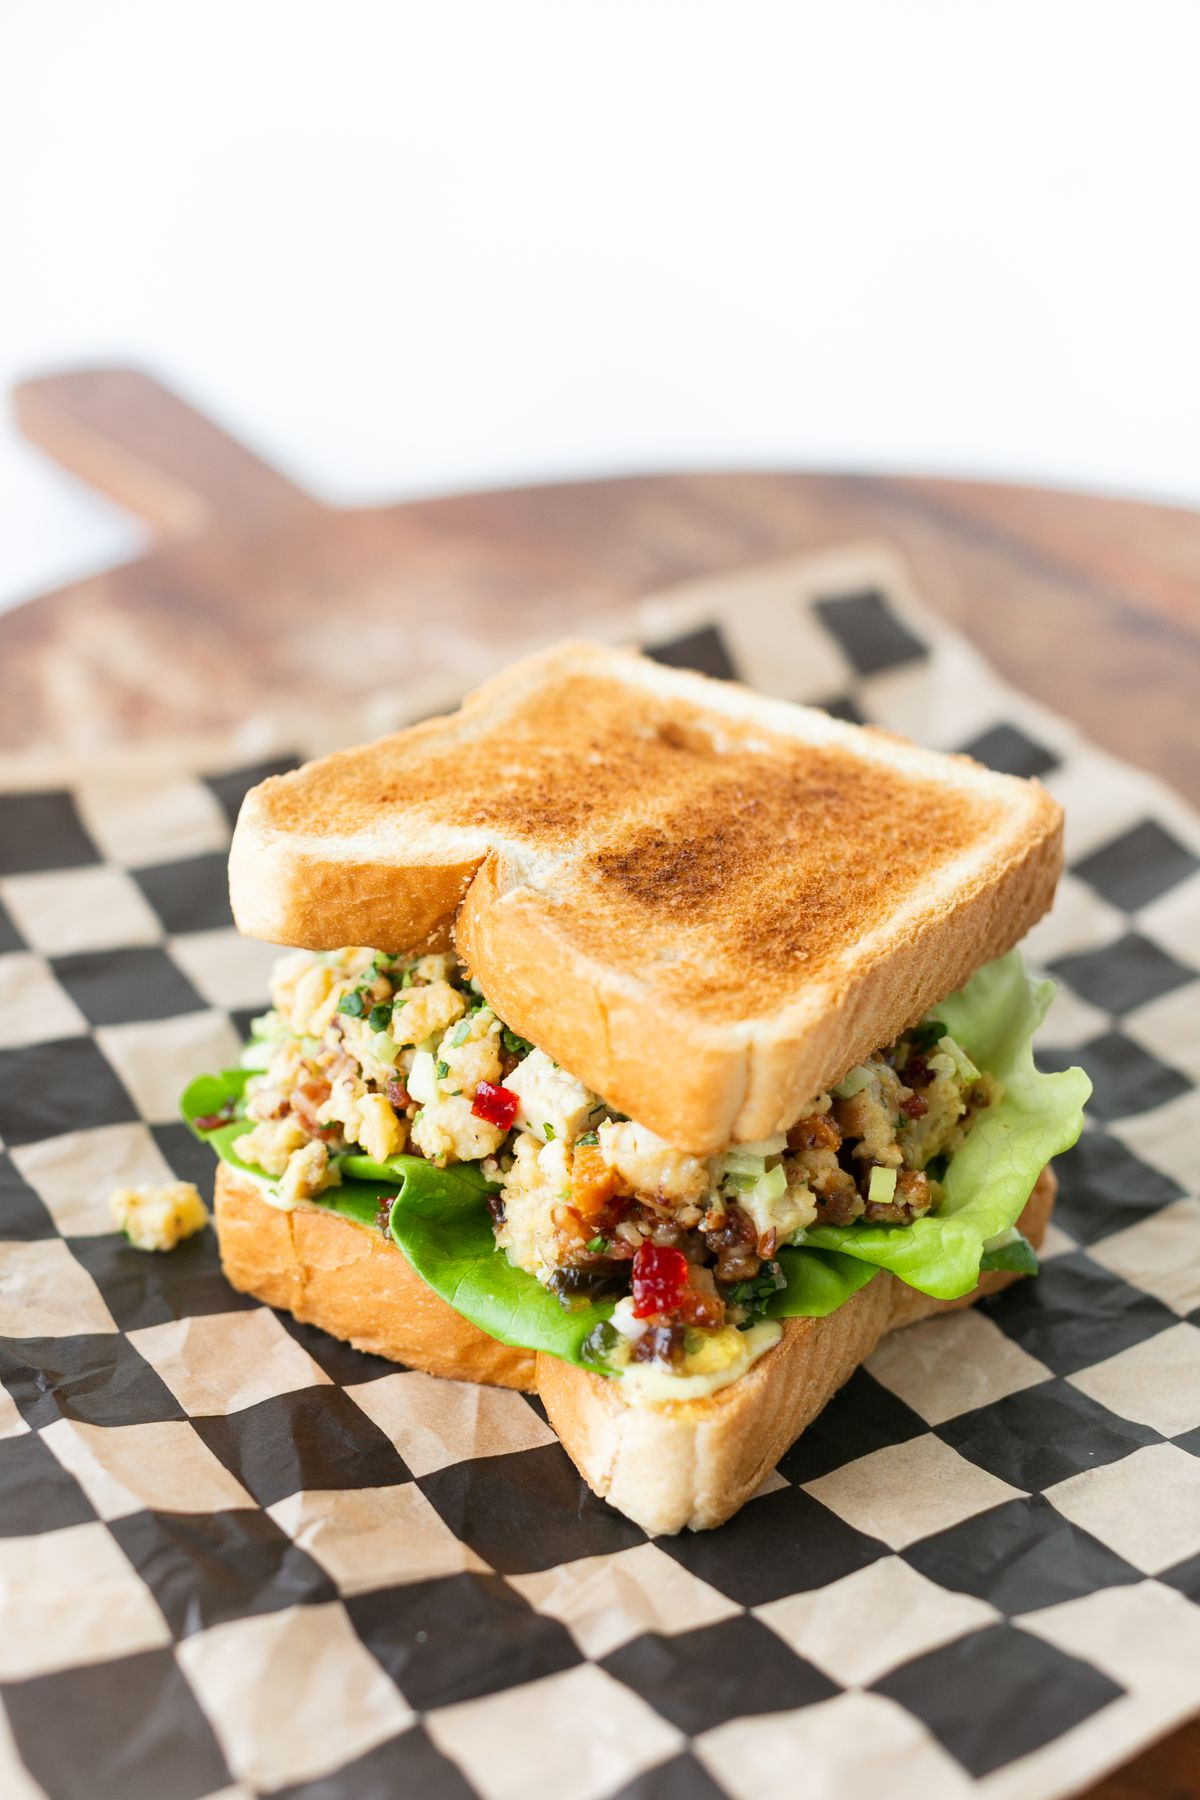 The Texan sandwich from Chicken Salad Shoppe